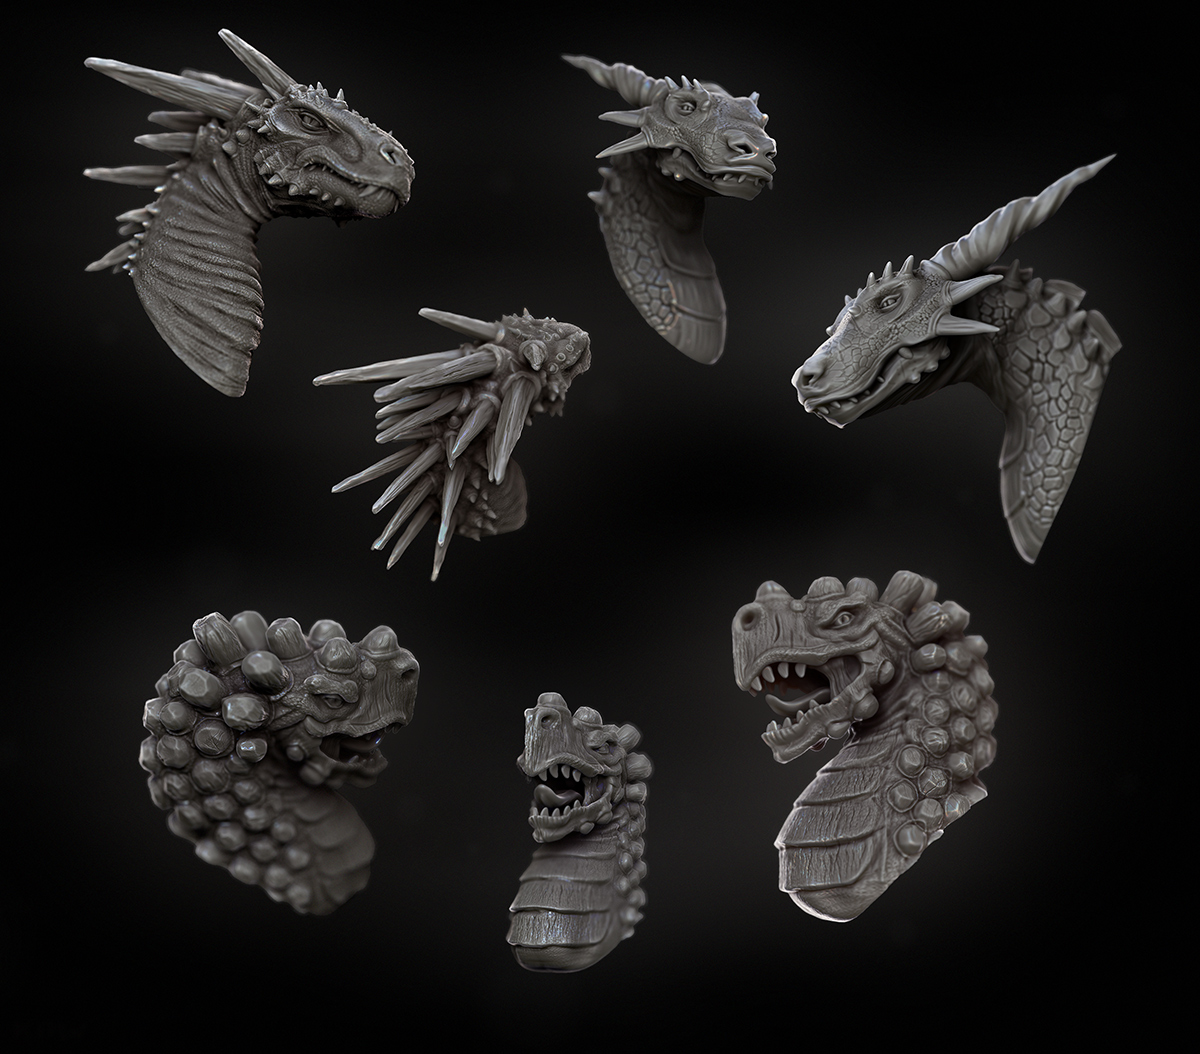 dragons_all_v01.jpg